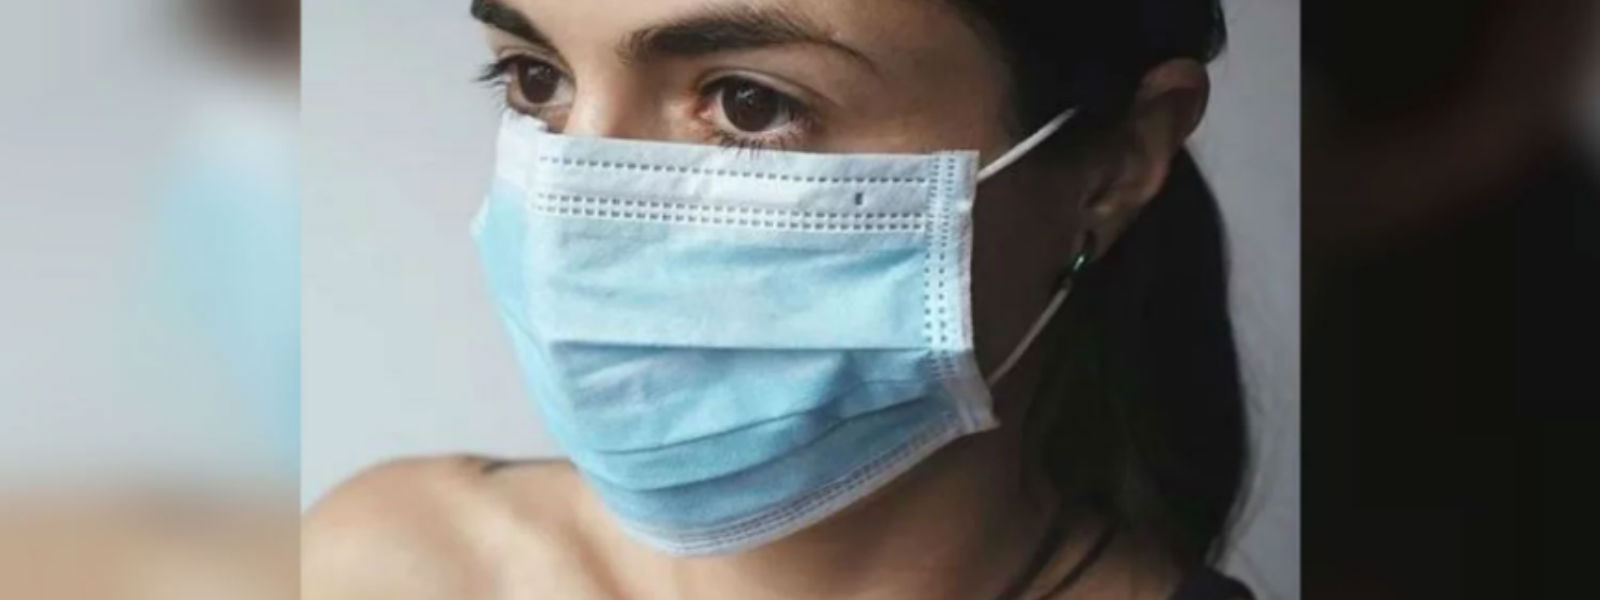 NMRA to take action against those selling face masks at higher prices